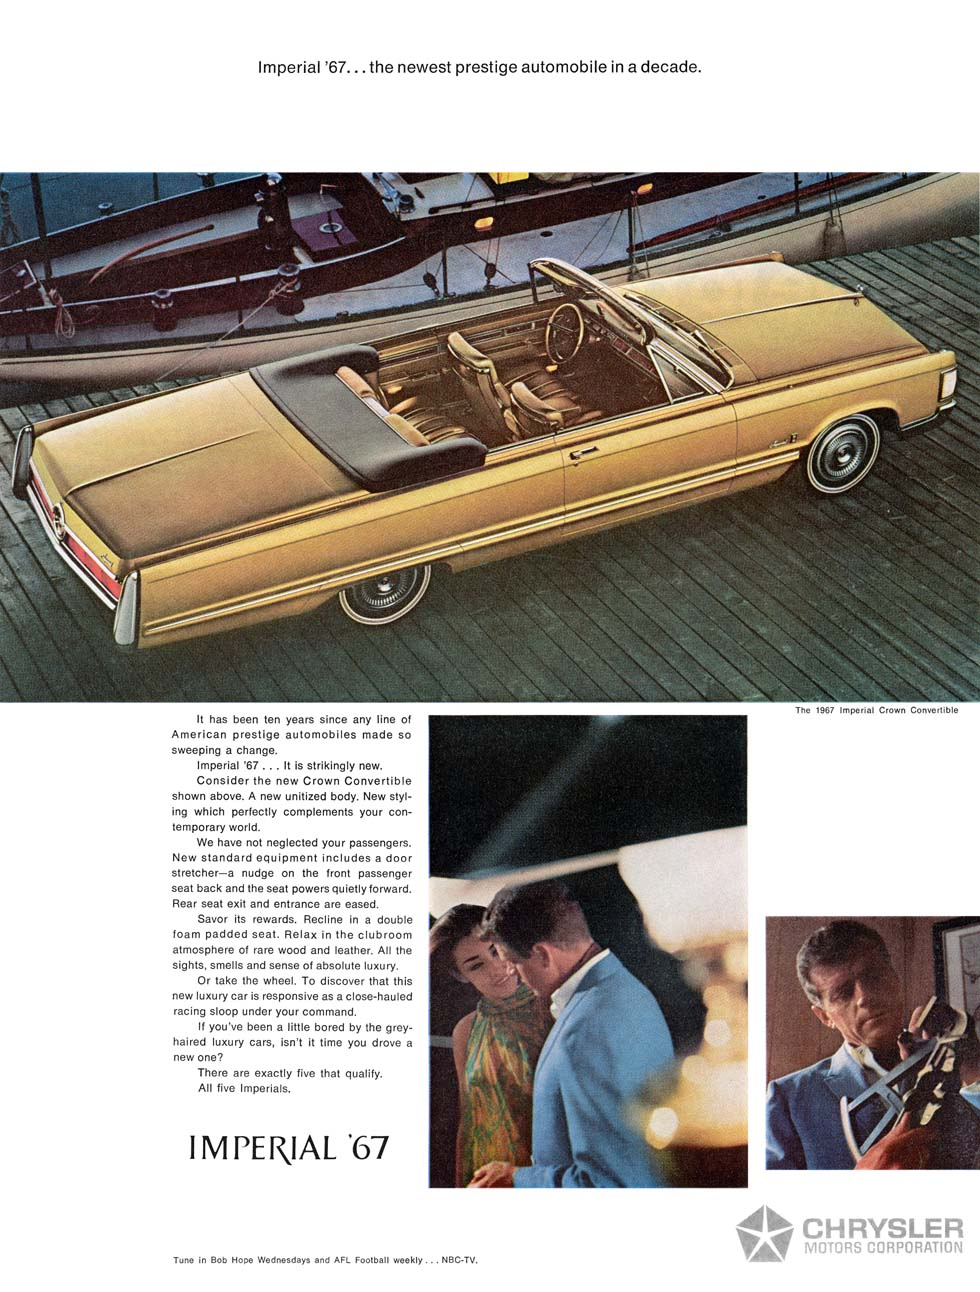 1967 Imperial Crown Convertible advertisement.